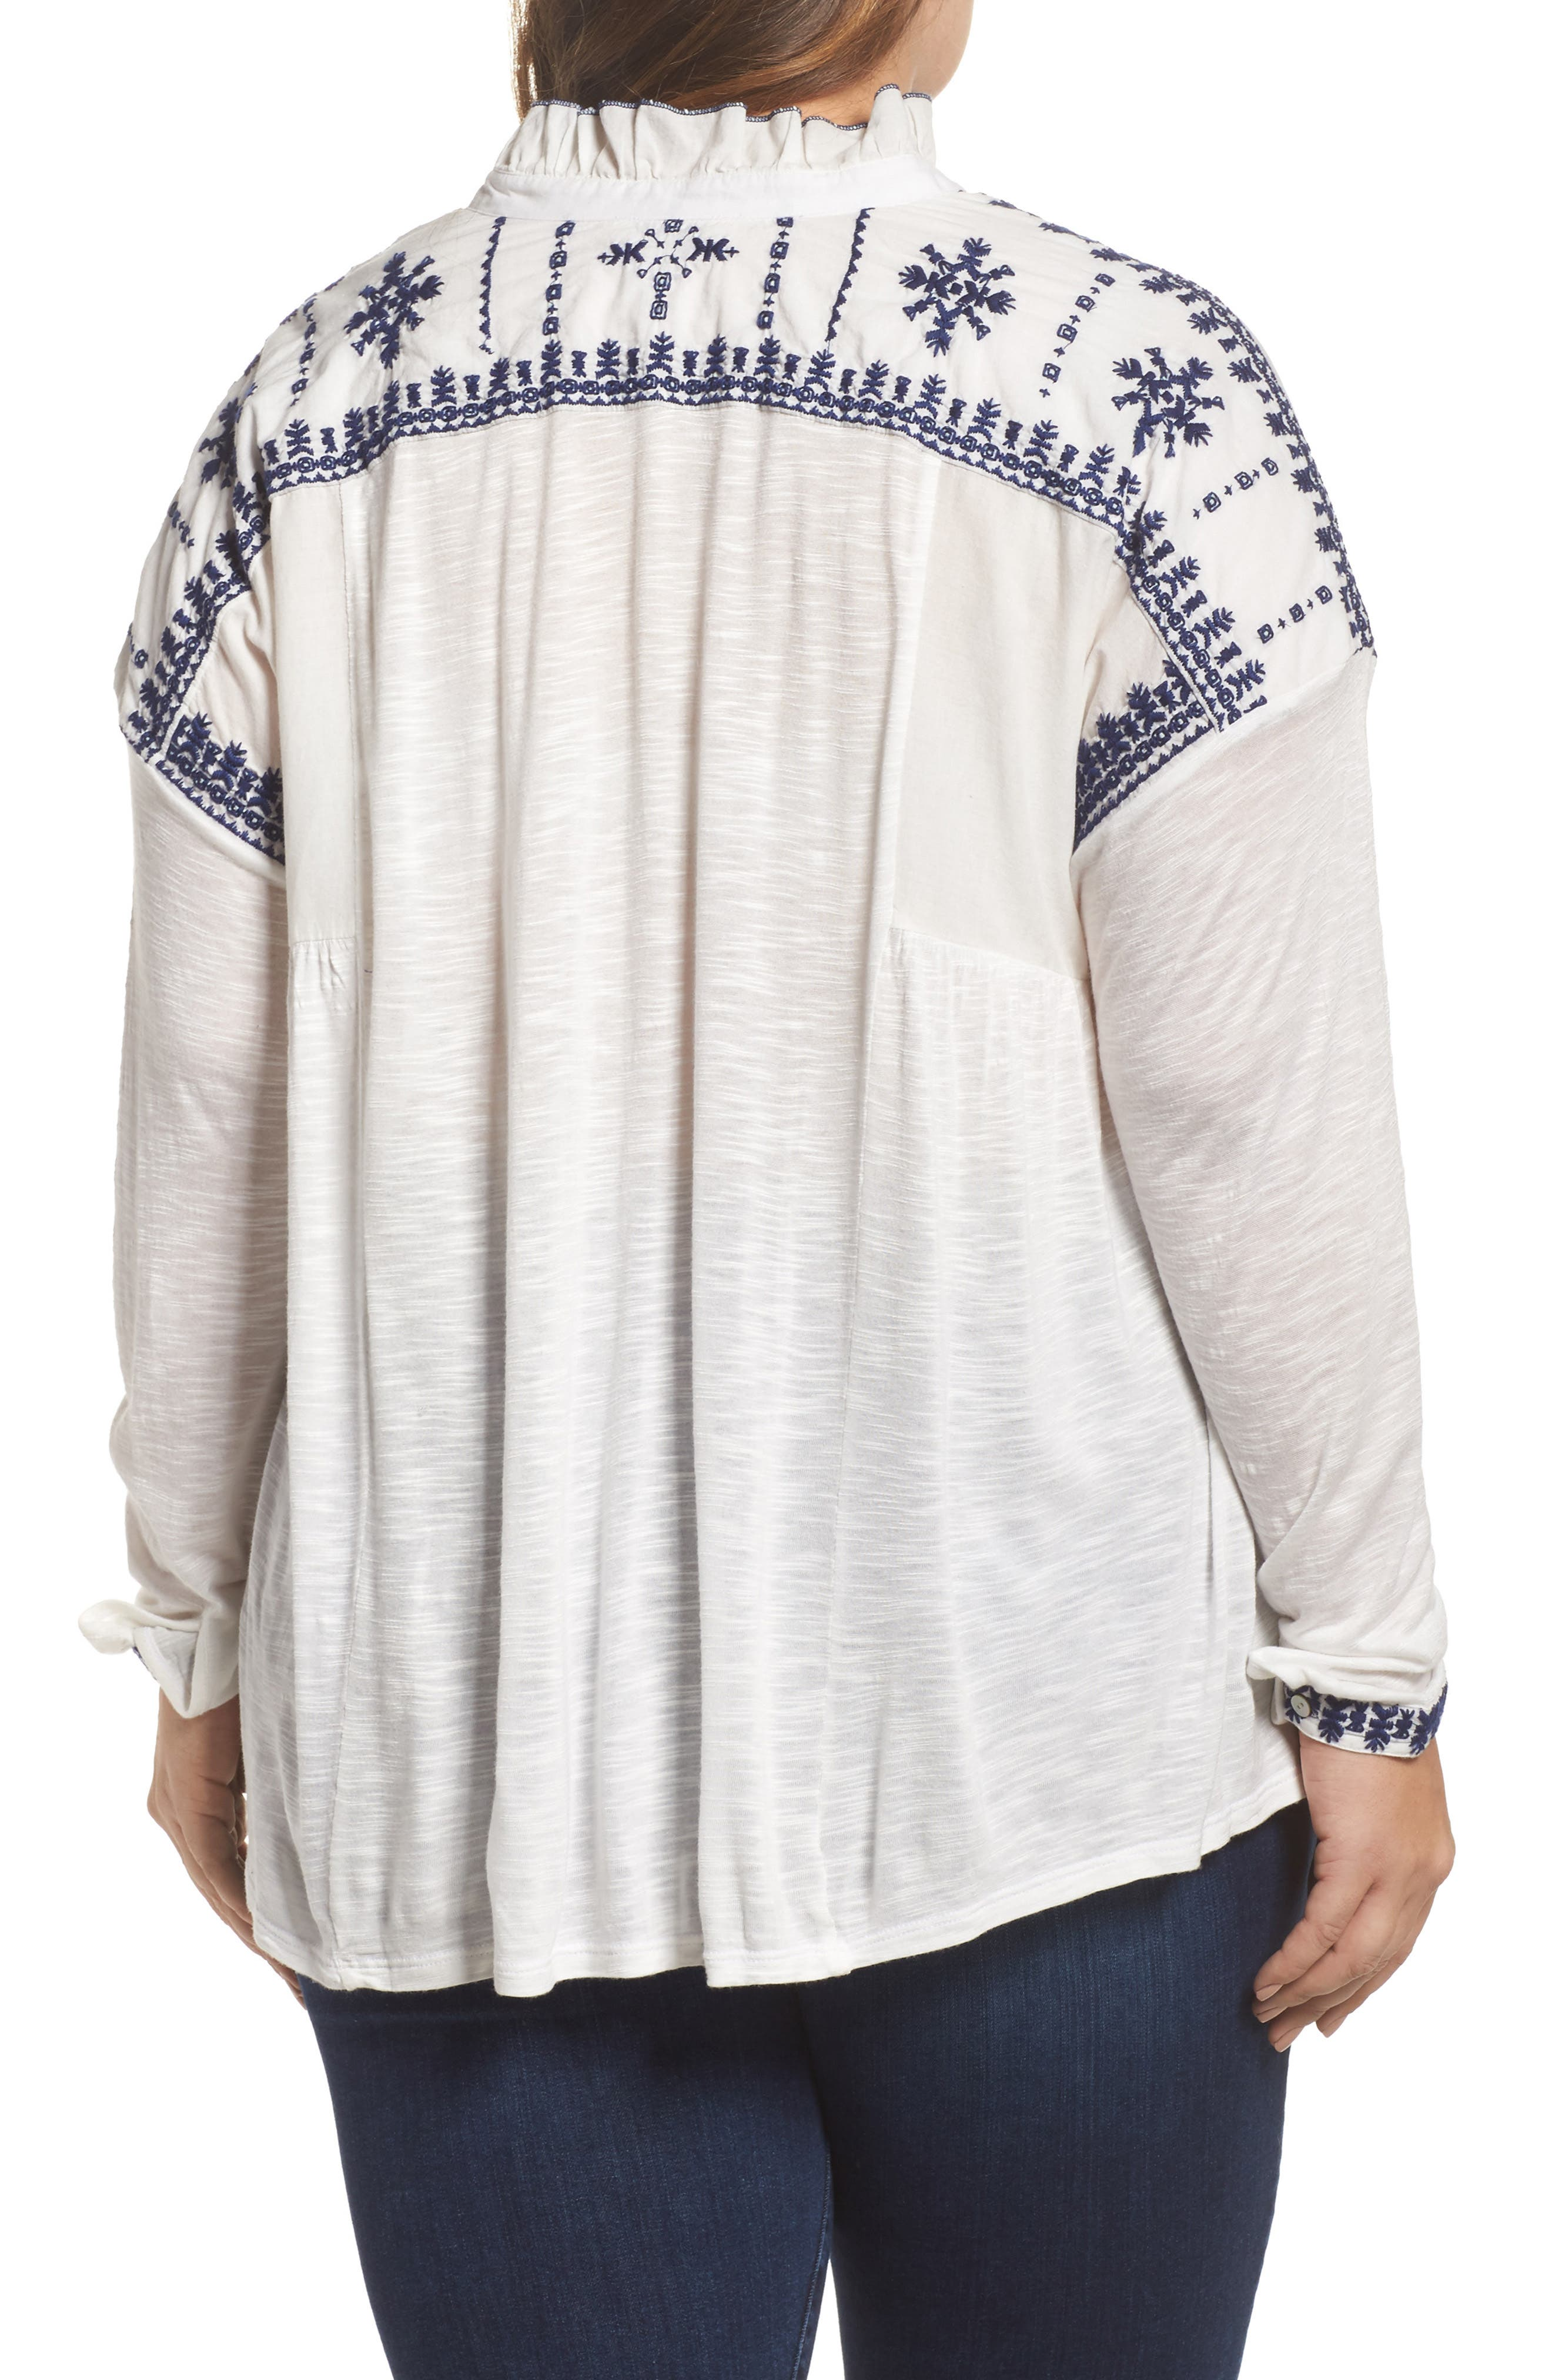 Alternate Image 2  - Lucky Brand Embroidered Mixed Media Top (Plus Size)